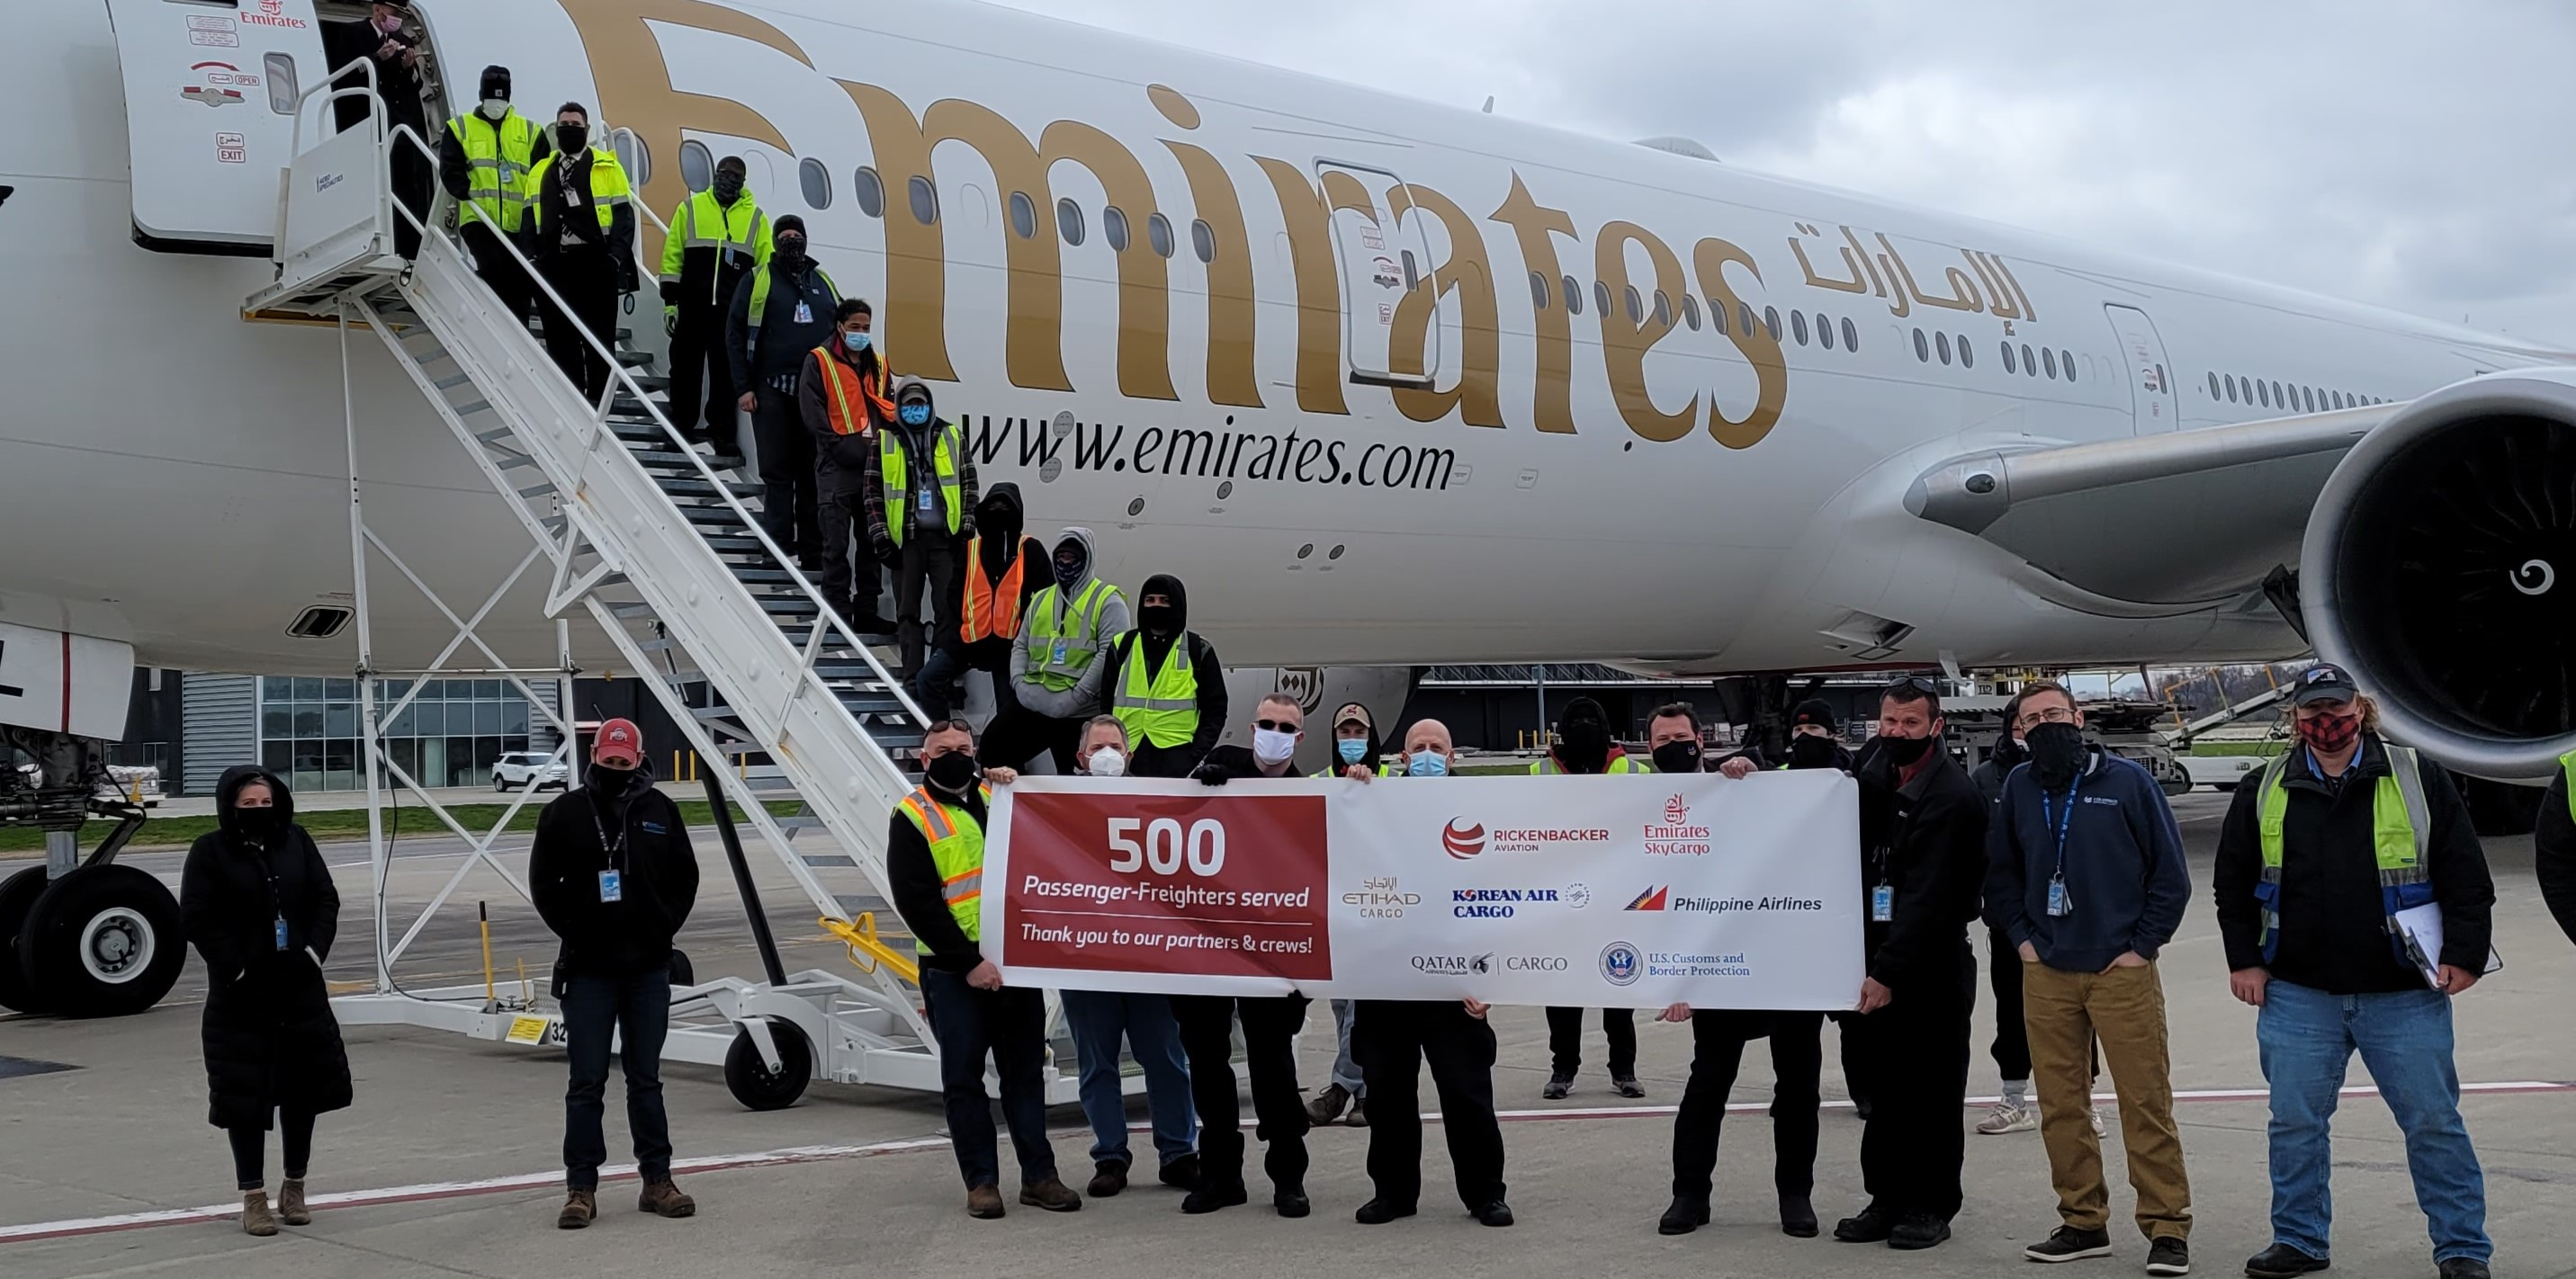 Rickenbacker International Airport (LCK) welcomed its 500th passenger-freighter on April 1. Rickenbacker is one of the few non-passenger hub airports to accommodate these unique cargo-only flights.